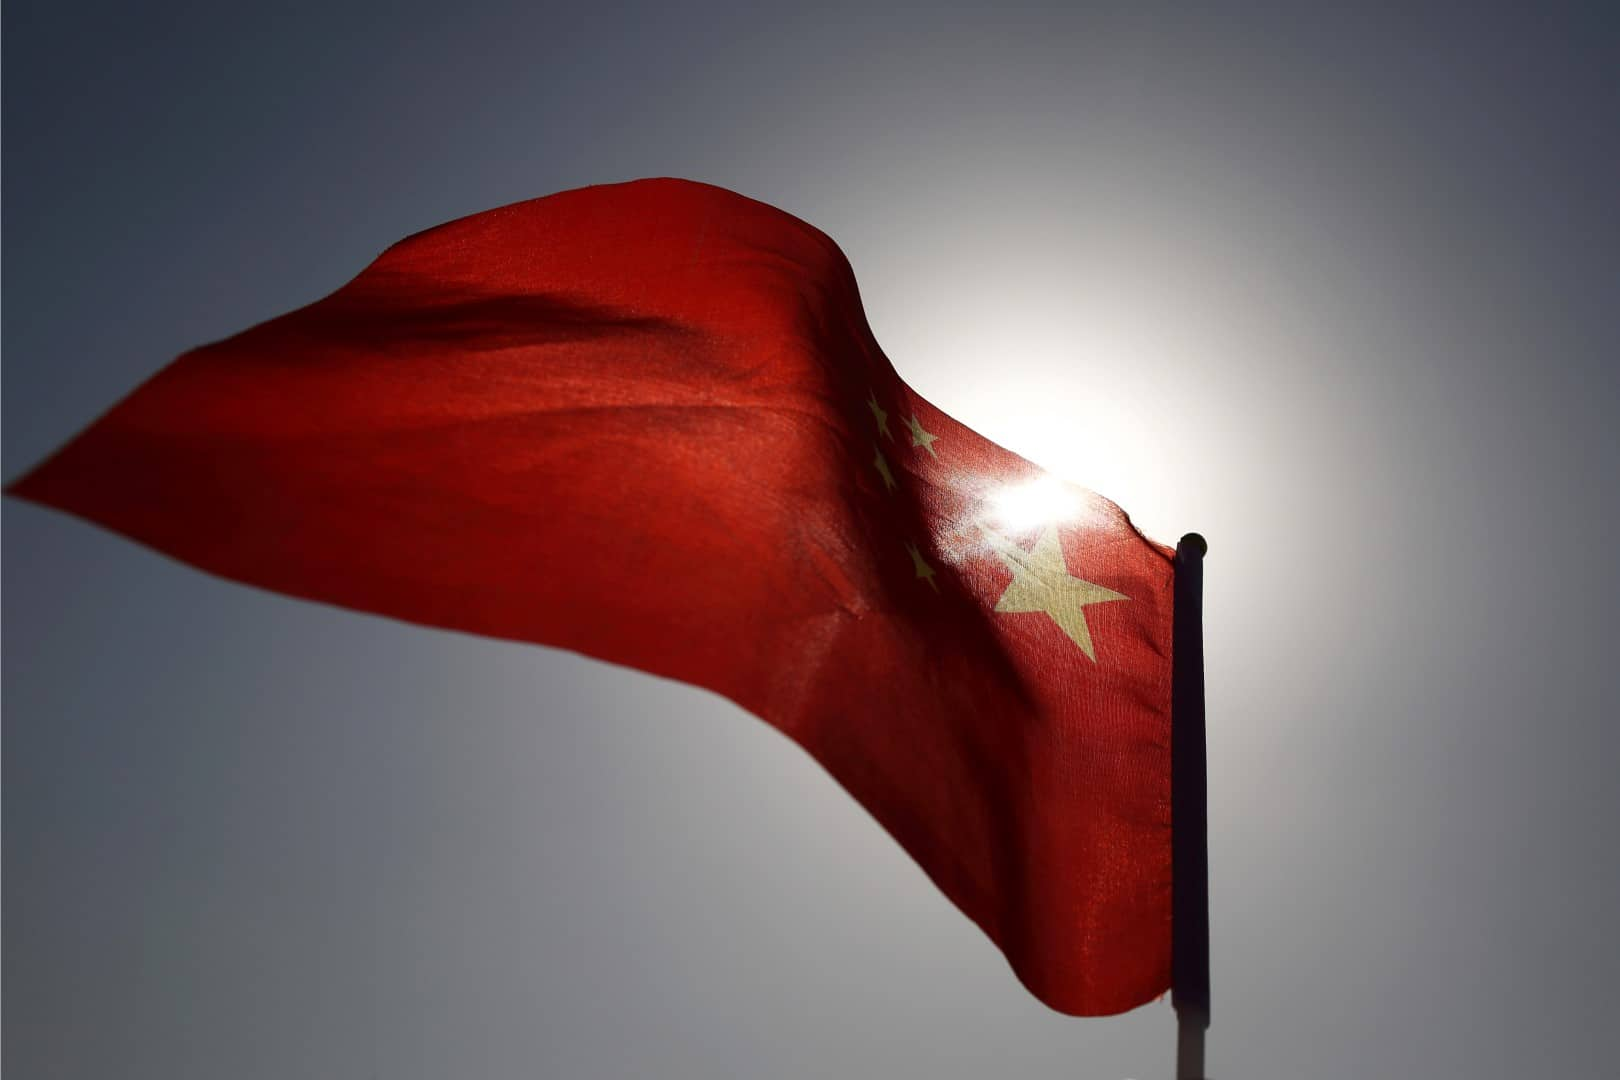 China Considering Additional Capital Controls: Bloomberg